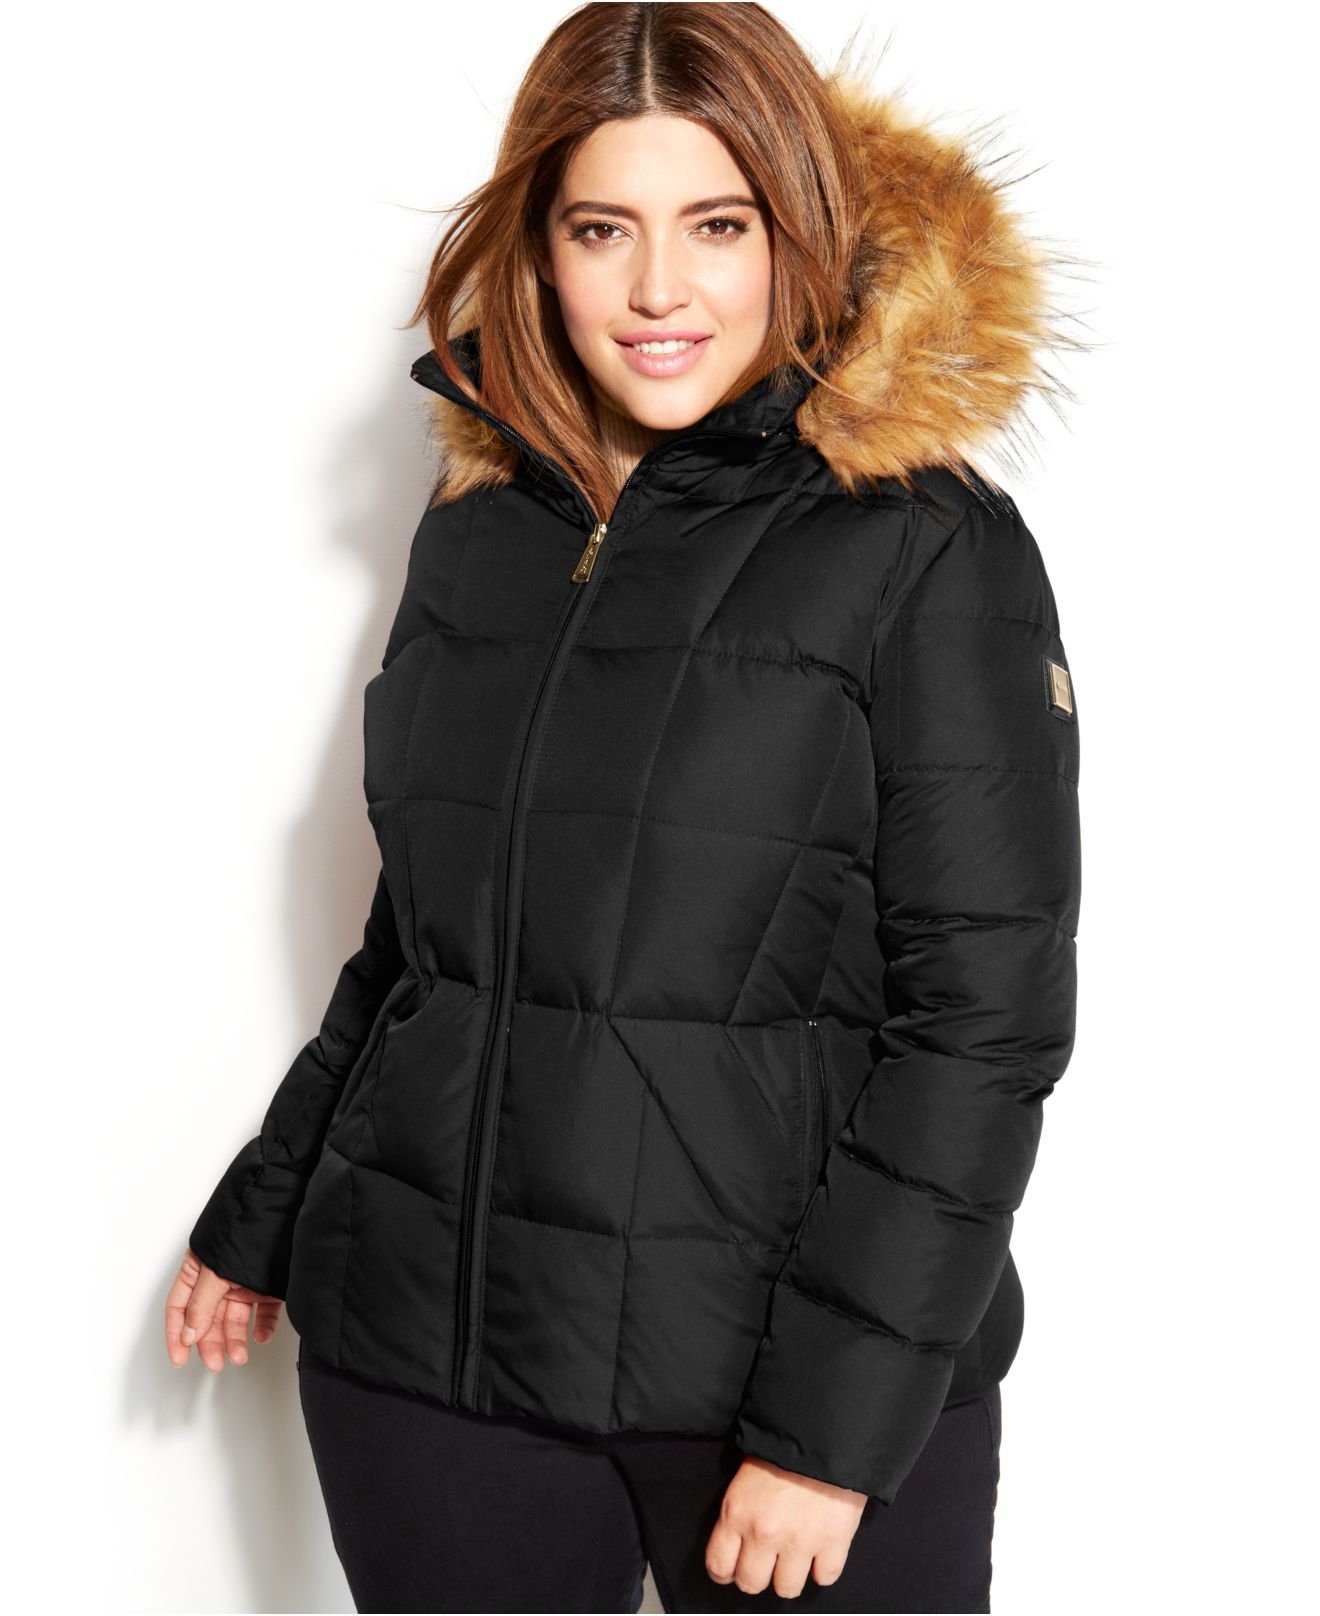 Plus Size Faux Fur Insert Hooded Asymmetric Coat - Black And Red - 2xl 4_5 (4) 58U26ANGS14 Note: For multiple item orders, the processing time will be based on the item with the longest processing time.